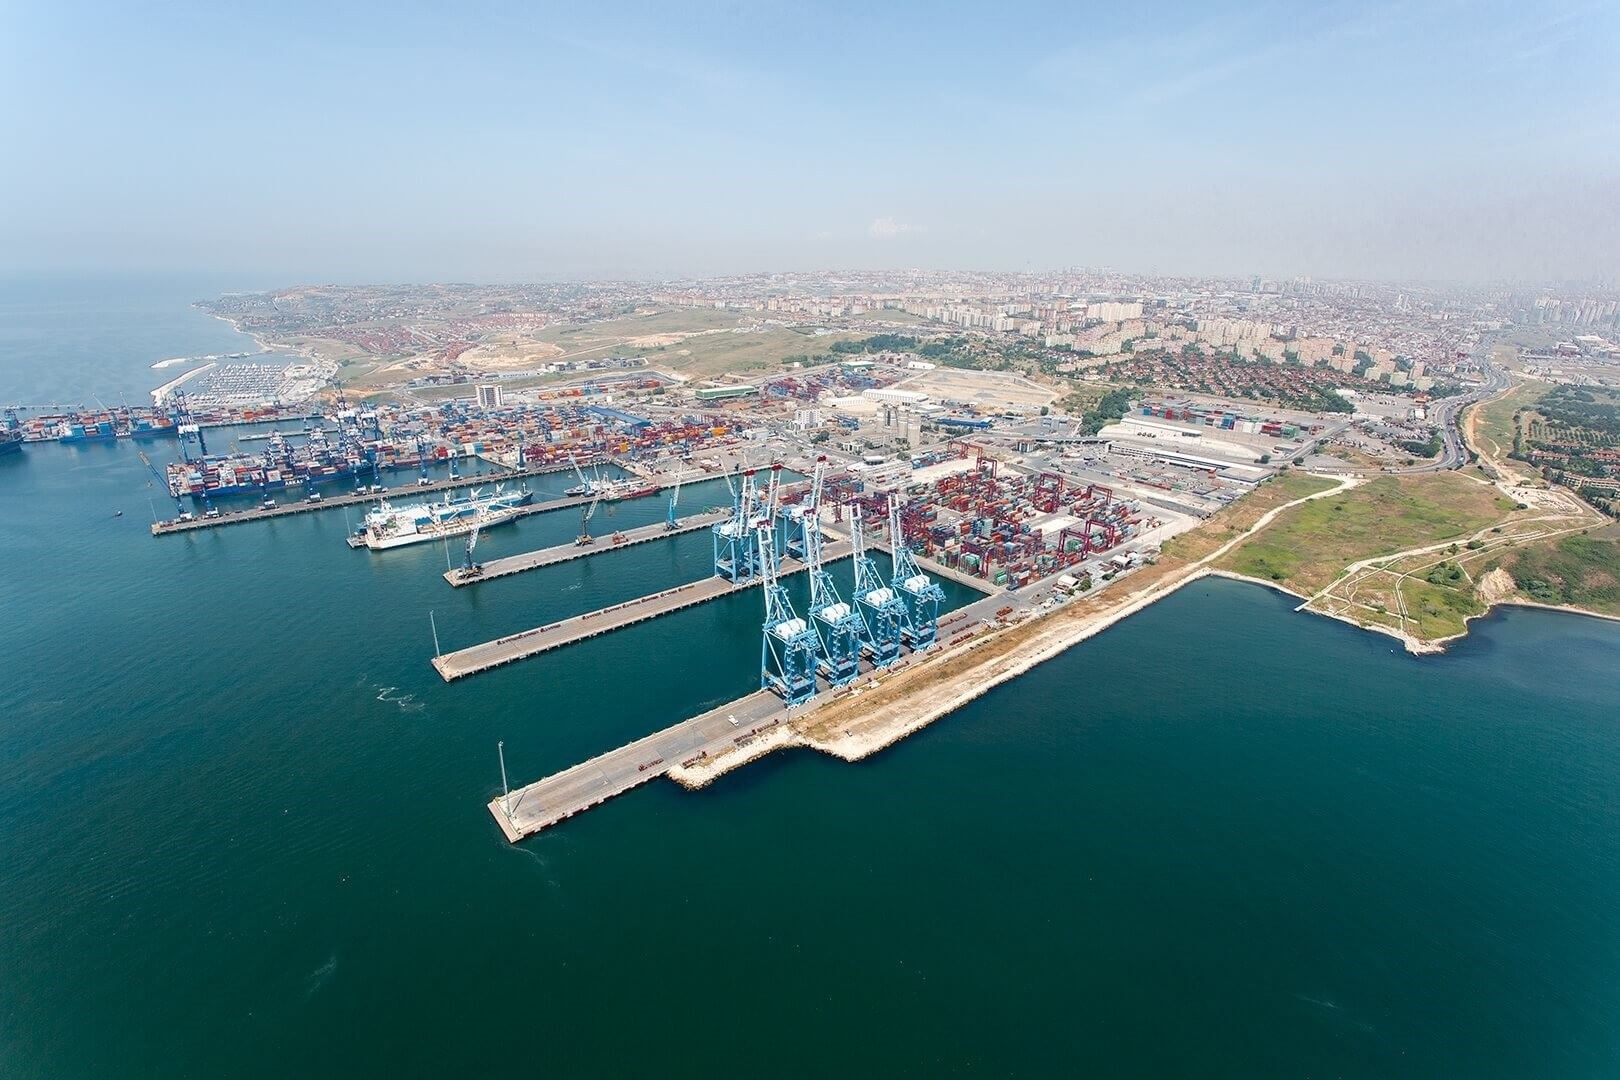 Turkeyu2019s total foreign trade volume was around $391.3 billion in January-December 2017, according to the Turkish Statistical Institute (TurkStat).